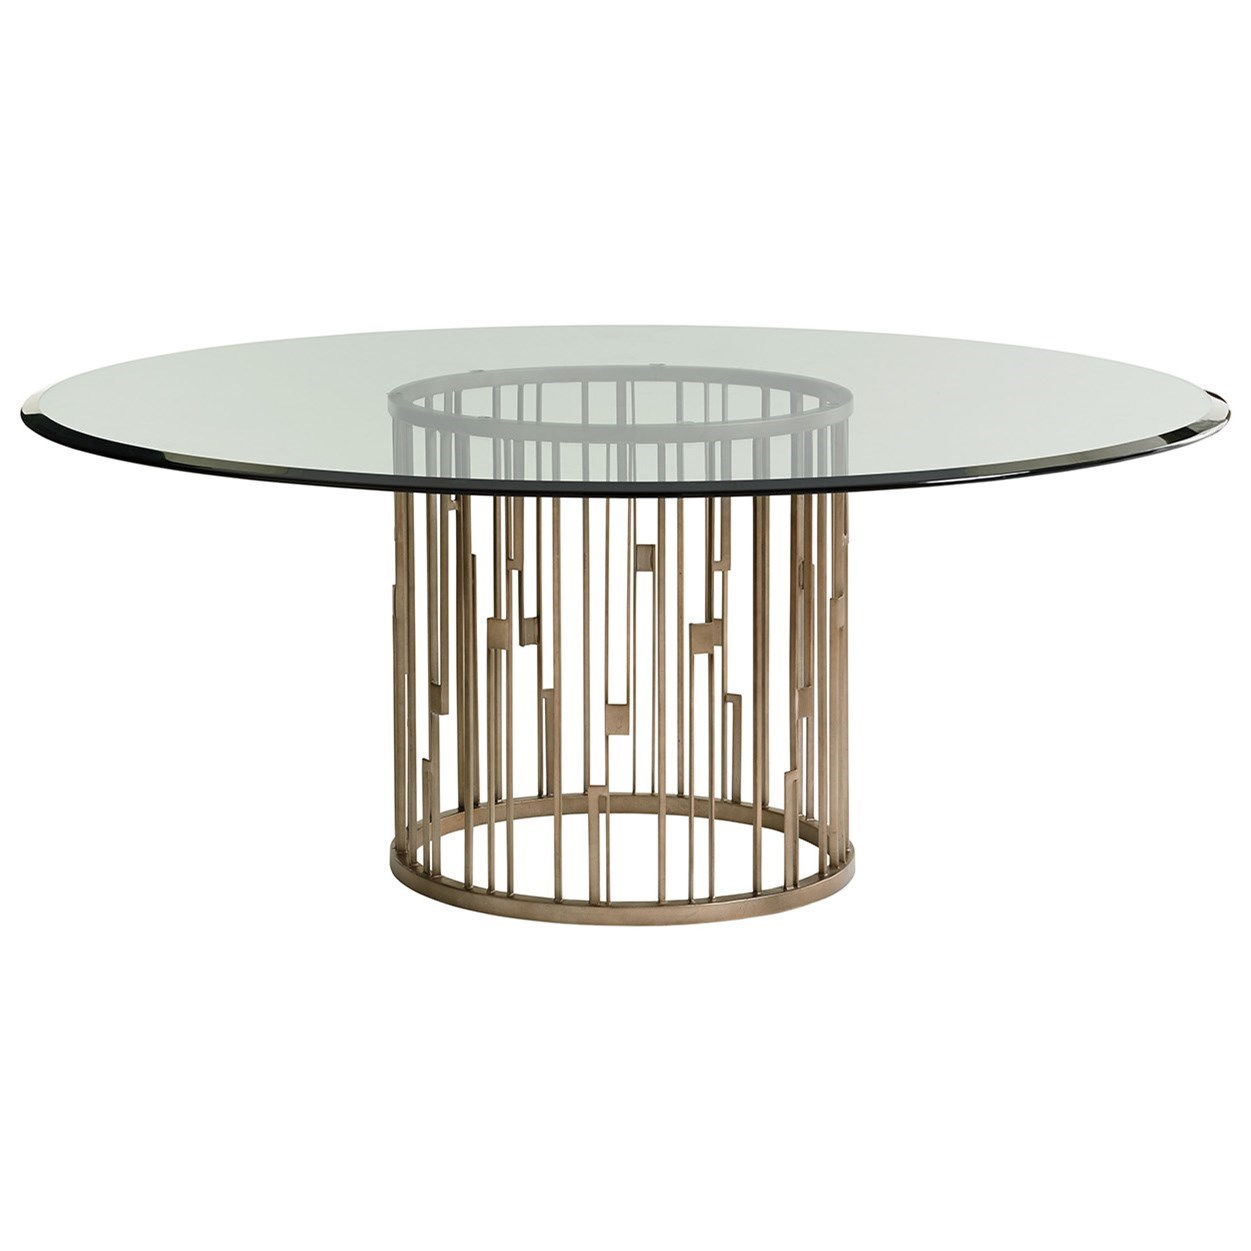 Shadow Play Rendezvous Dining Table with Glass Top by Lexington at Jacksonville Furniture Mart